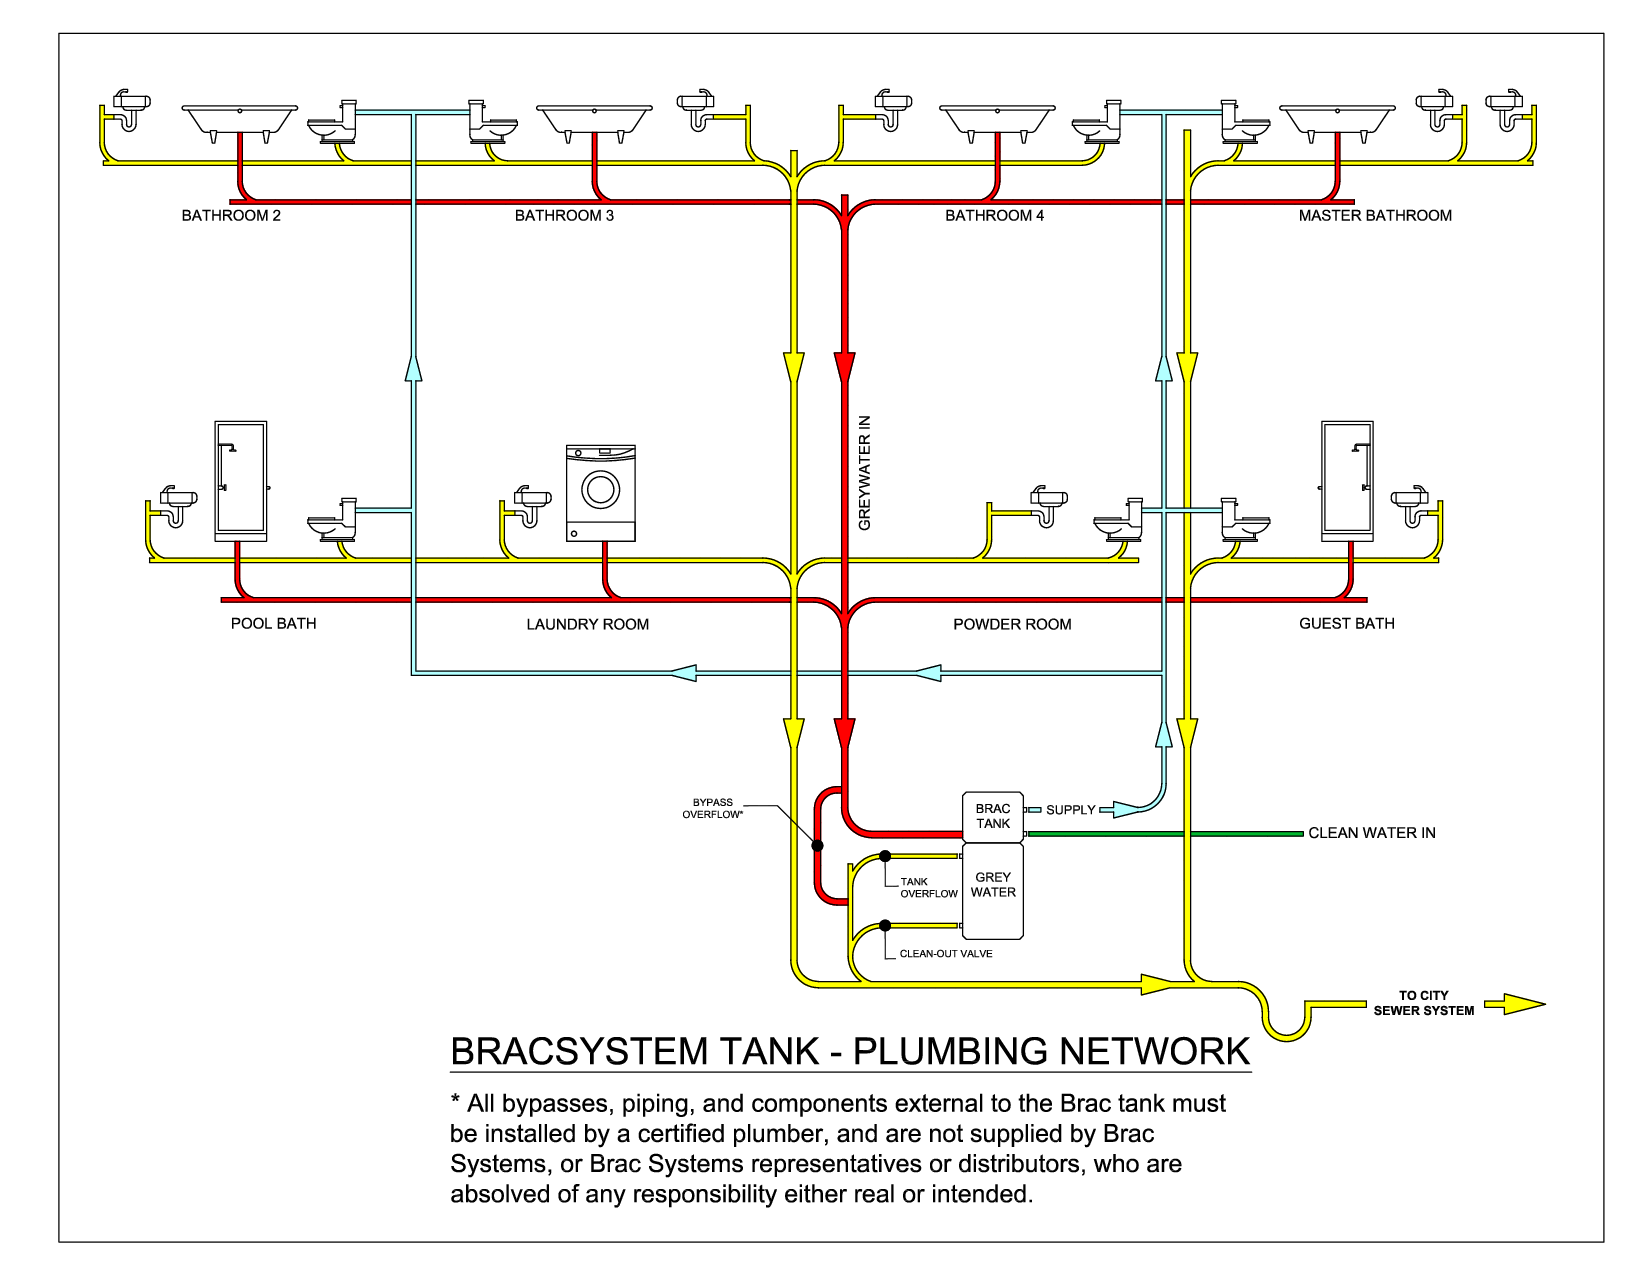 Mobile Home Plumbing Systems | Plumbing Network Diagram